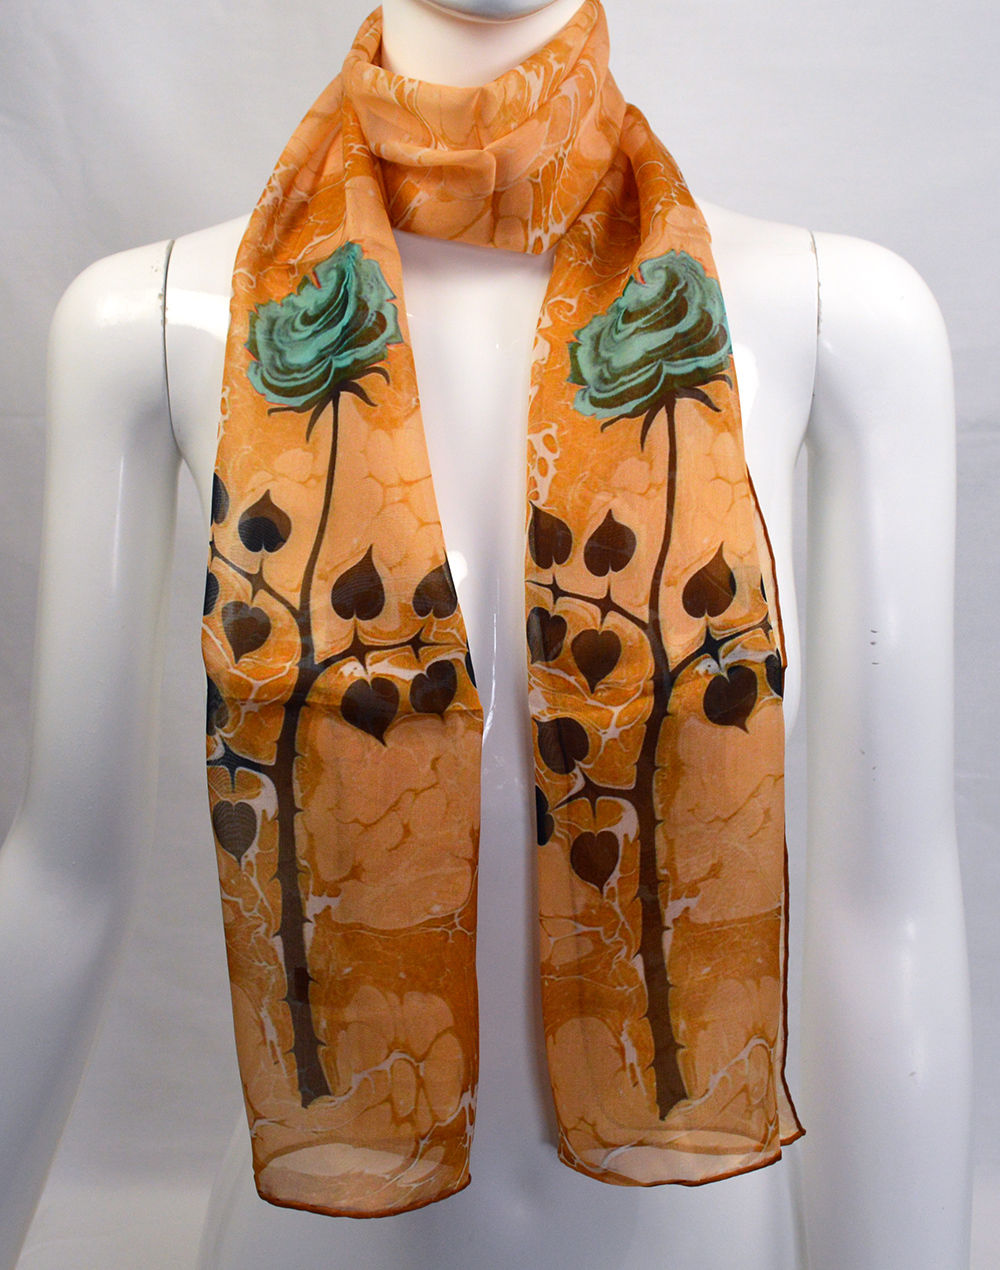 100 Pure Silk Orange And Floral Pattern Marbled Scarf